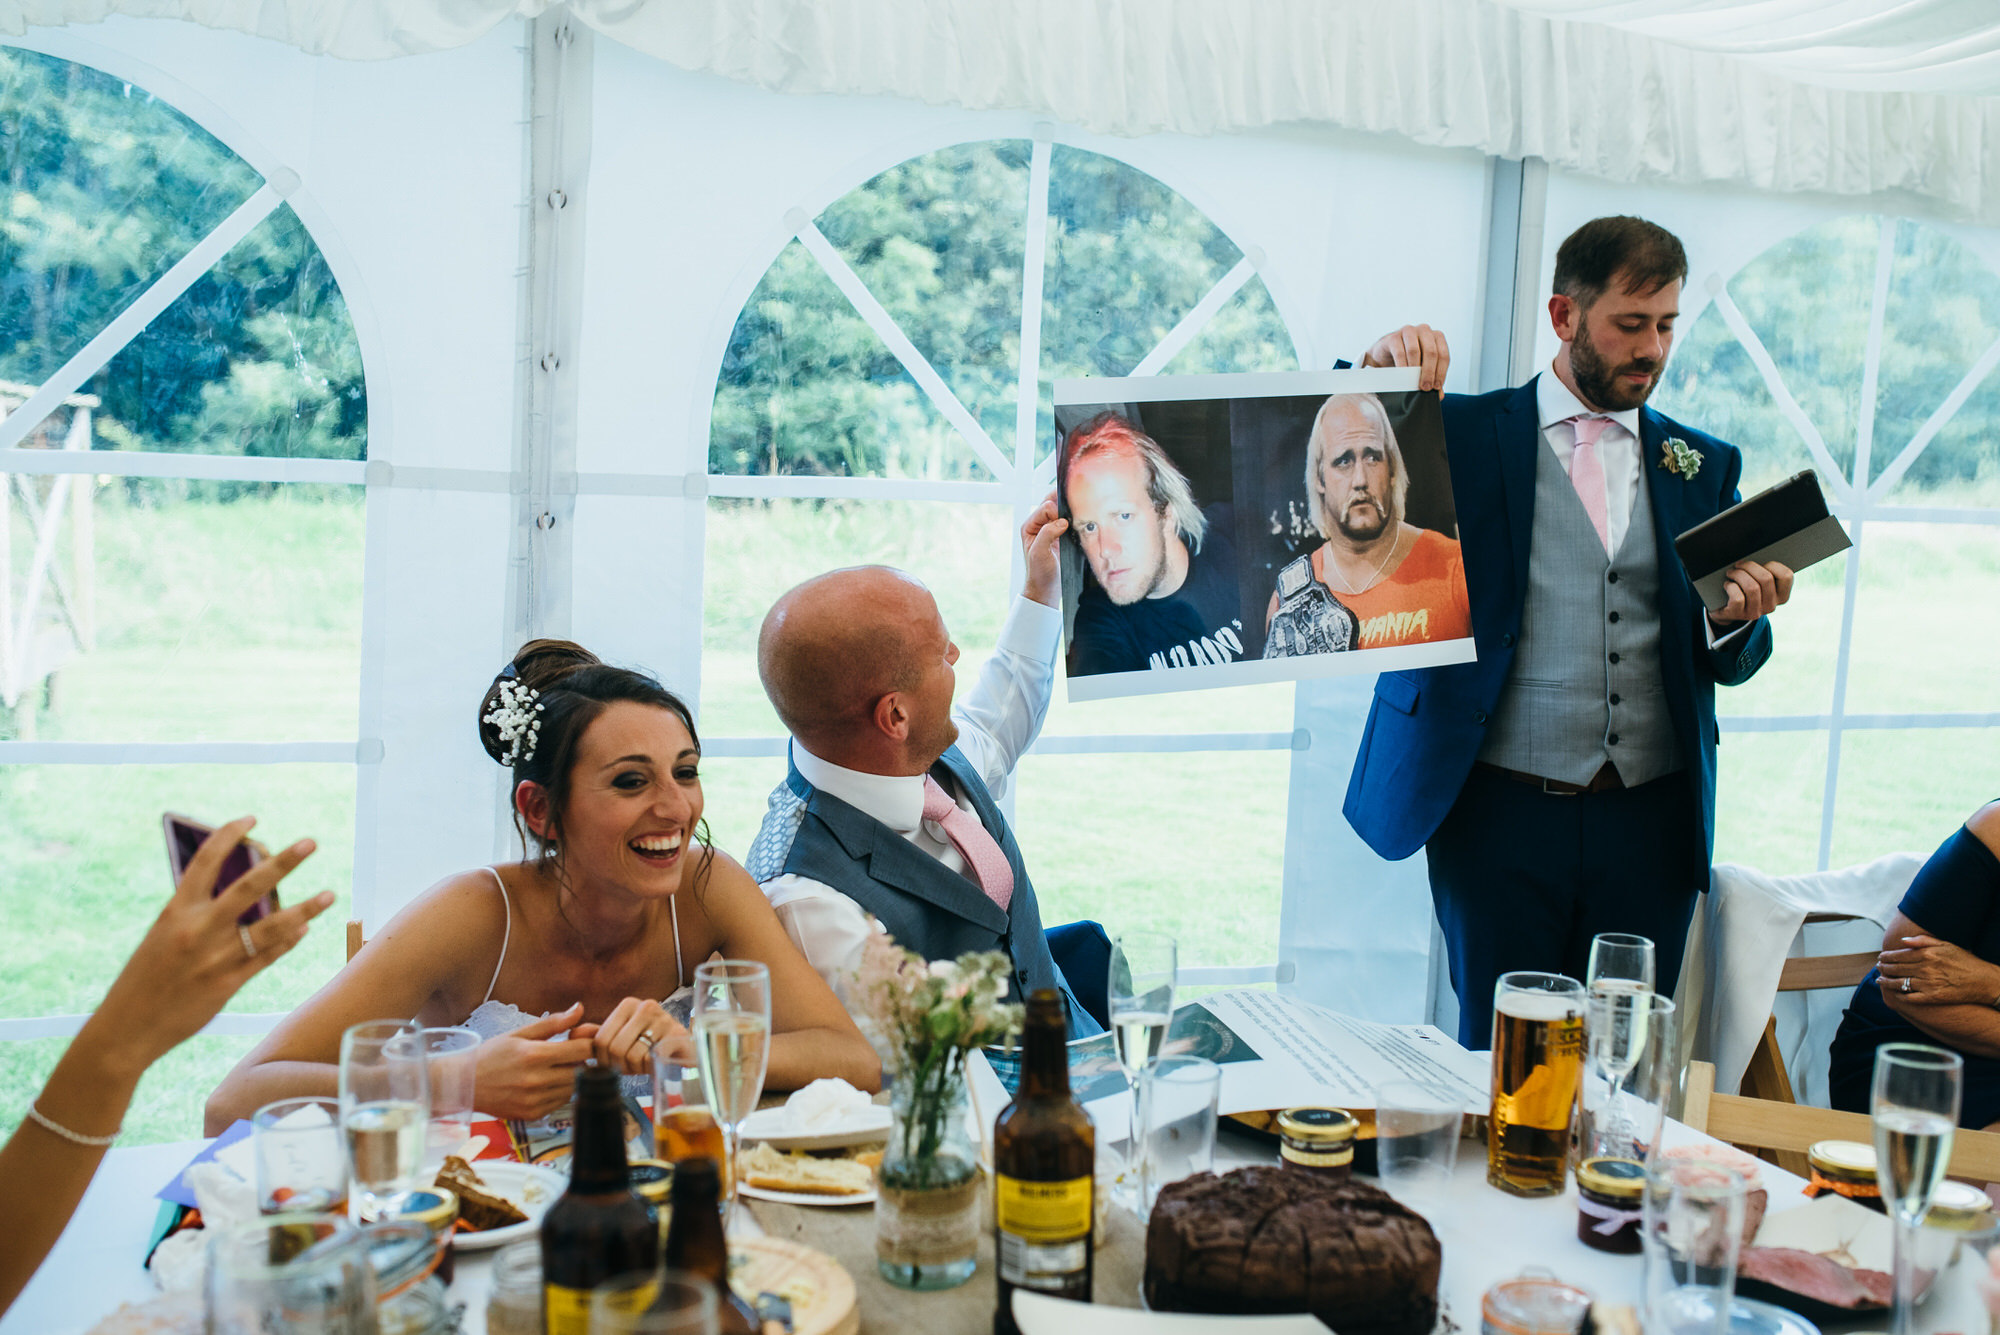 Hafod farm wedding photography069